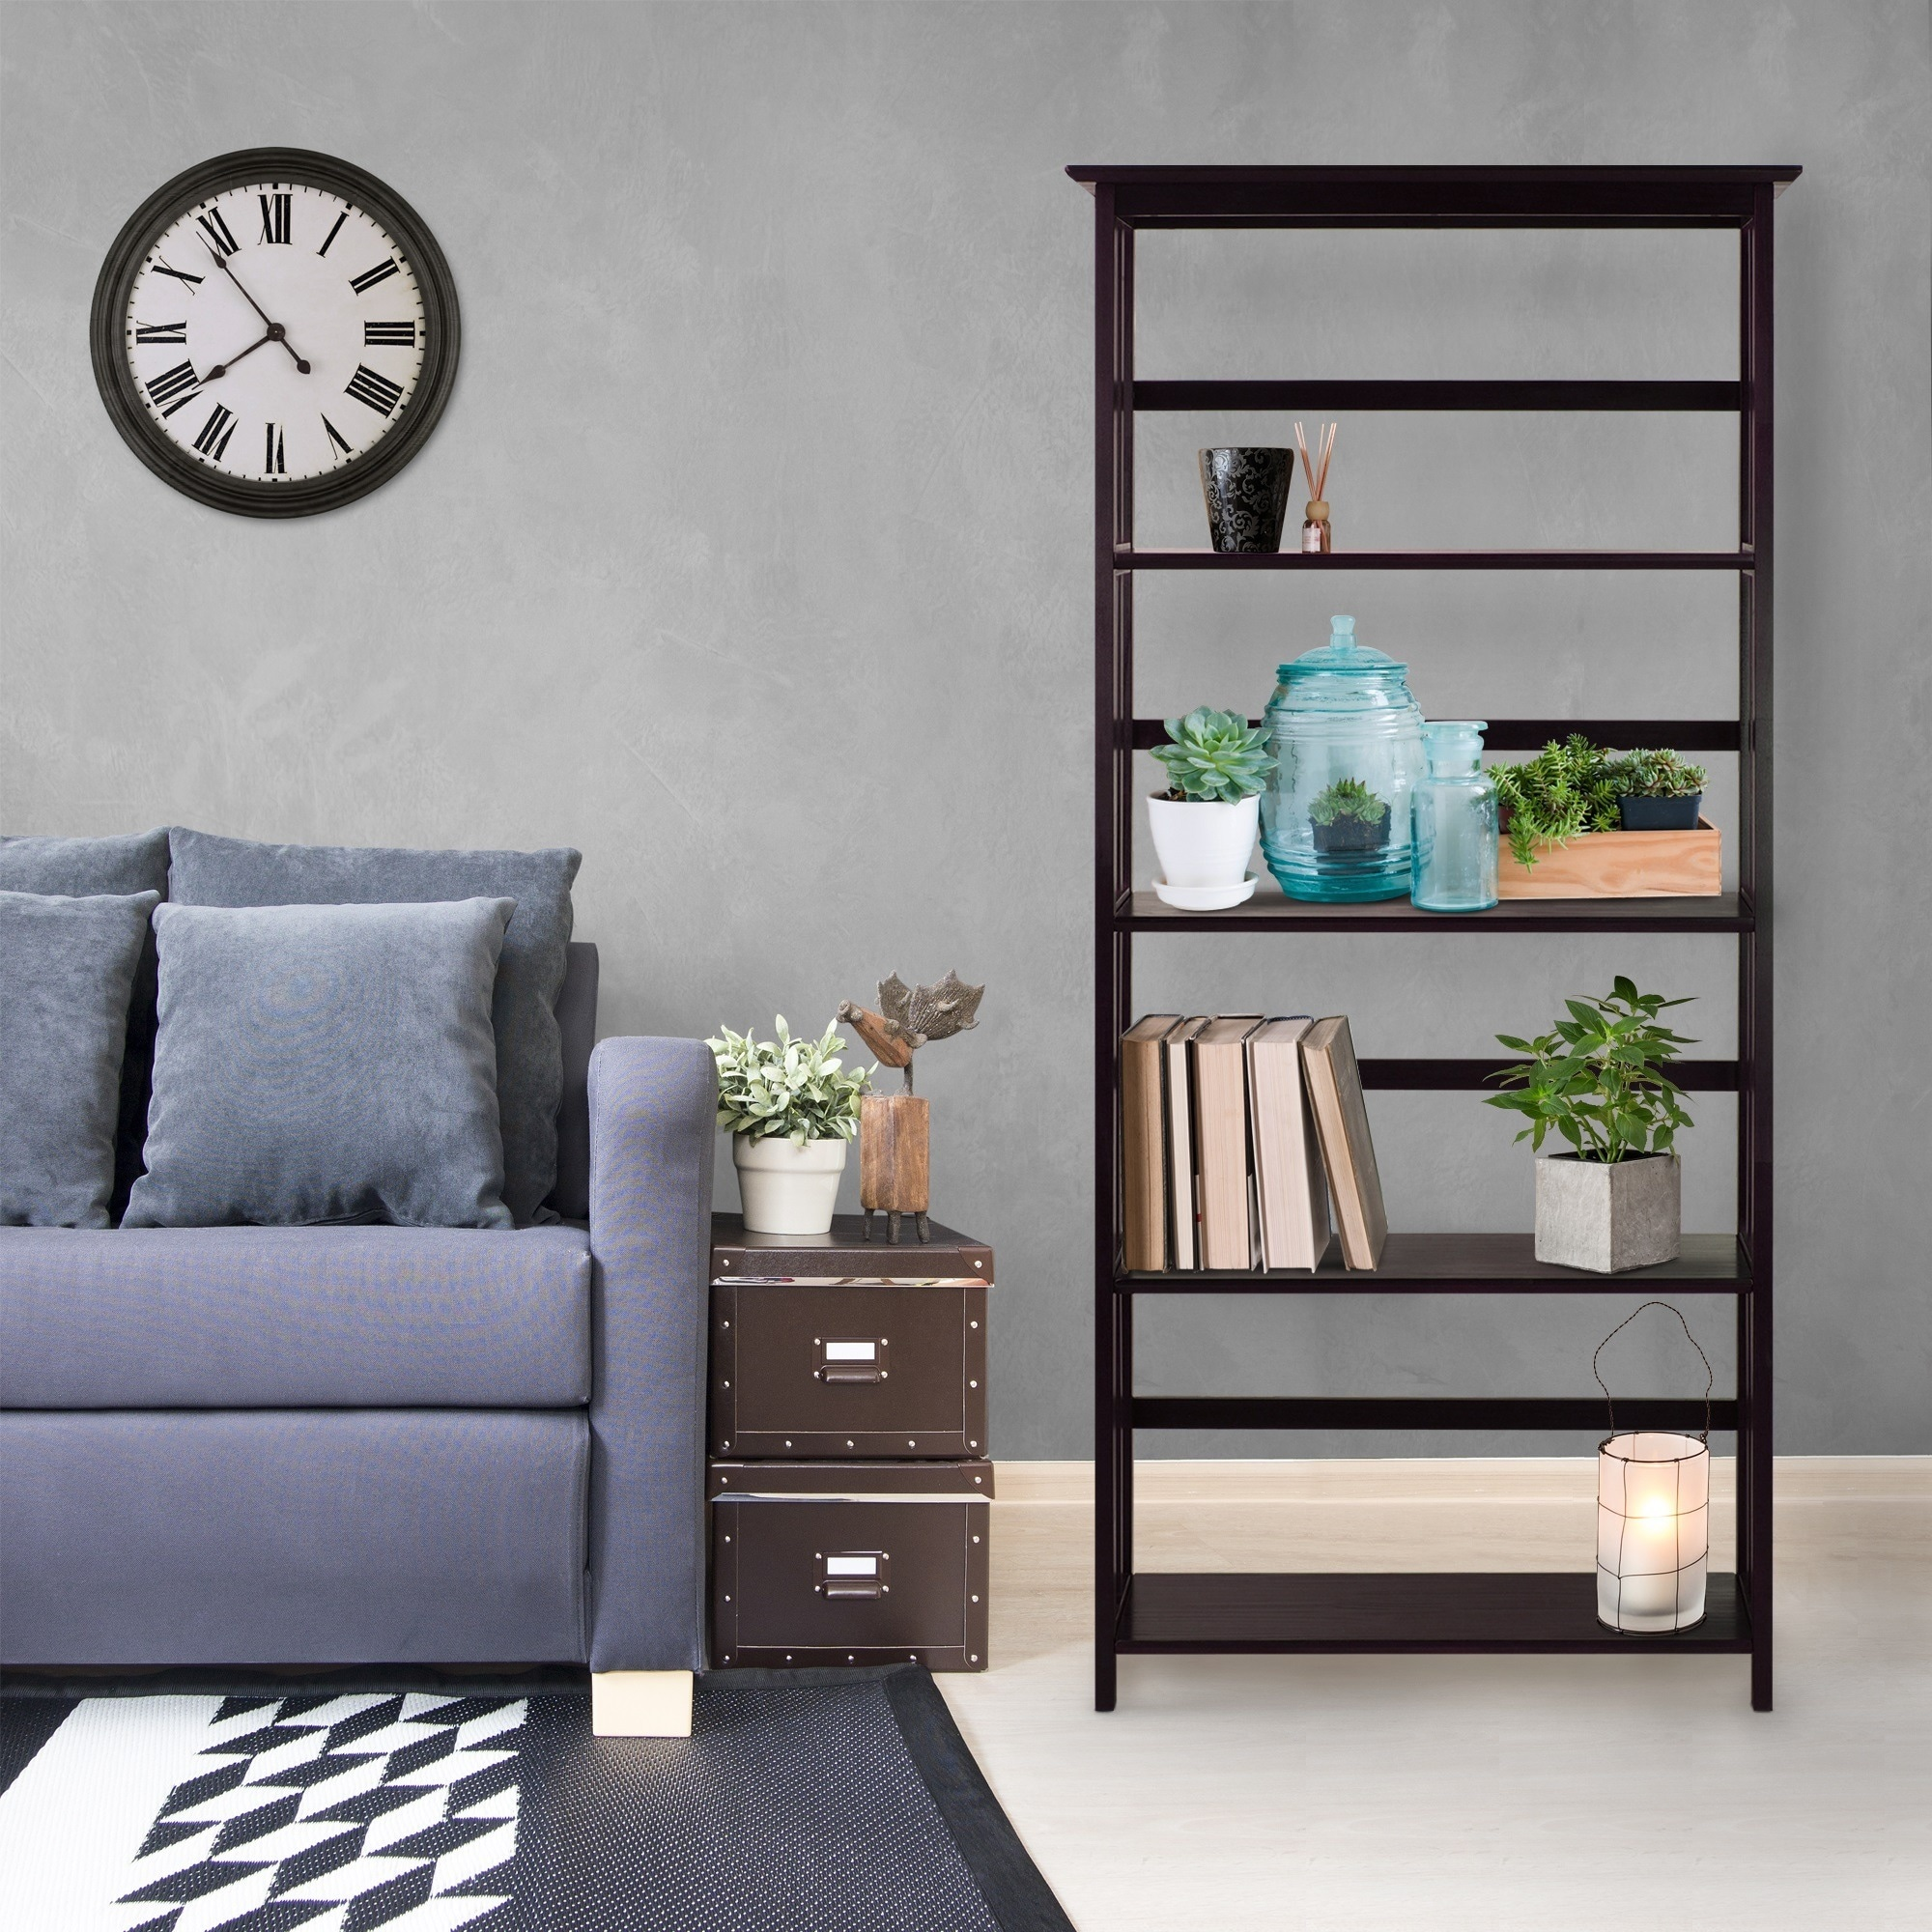 Buy Bookshelves U0026 Bookcases Online At Overstock.com | Our Best Living Room  Furniture Deals